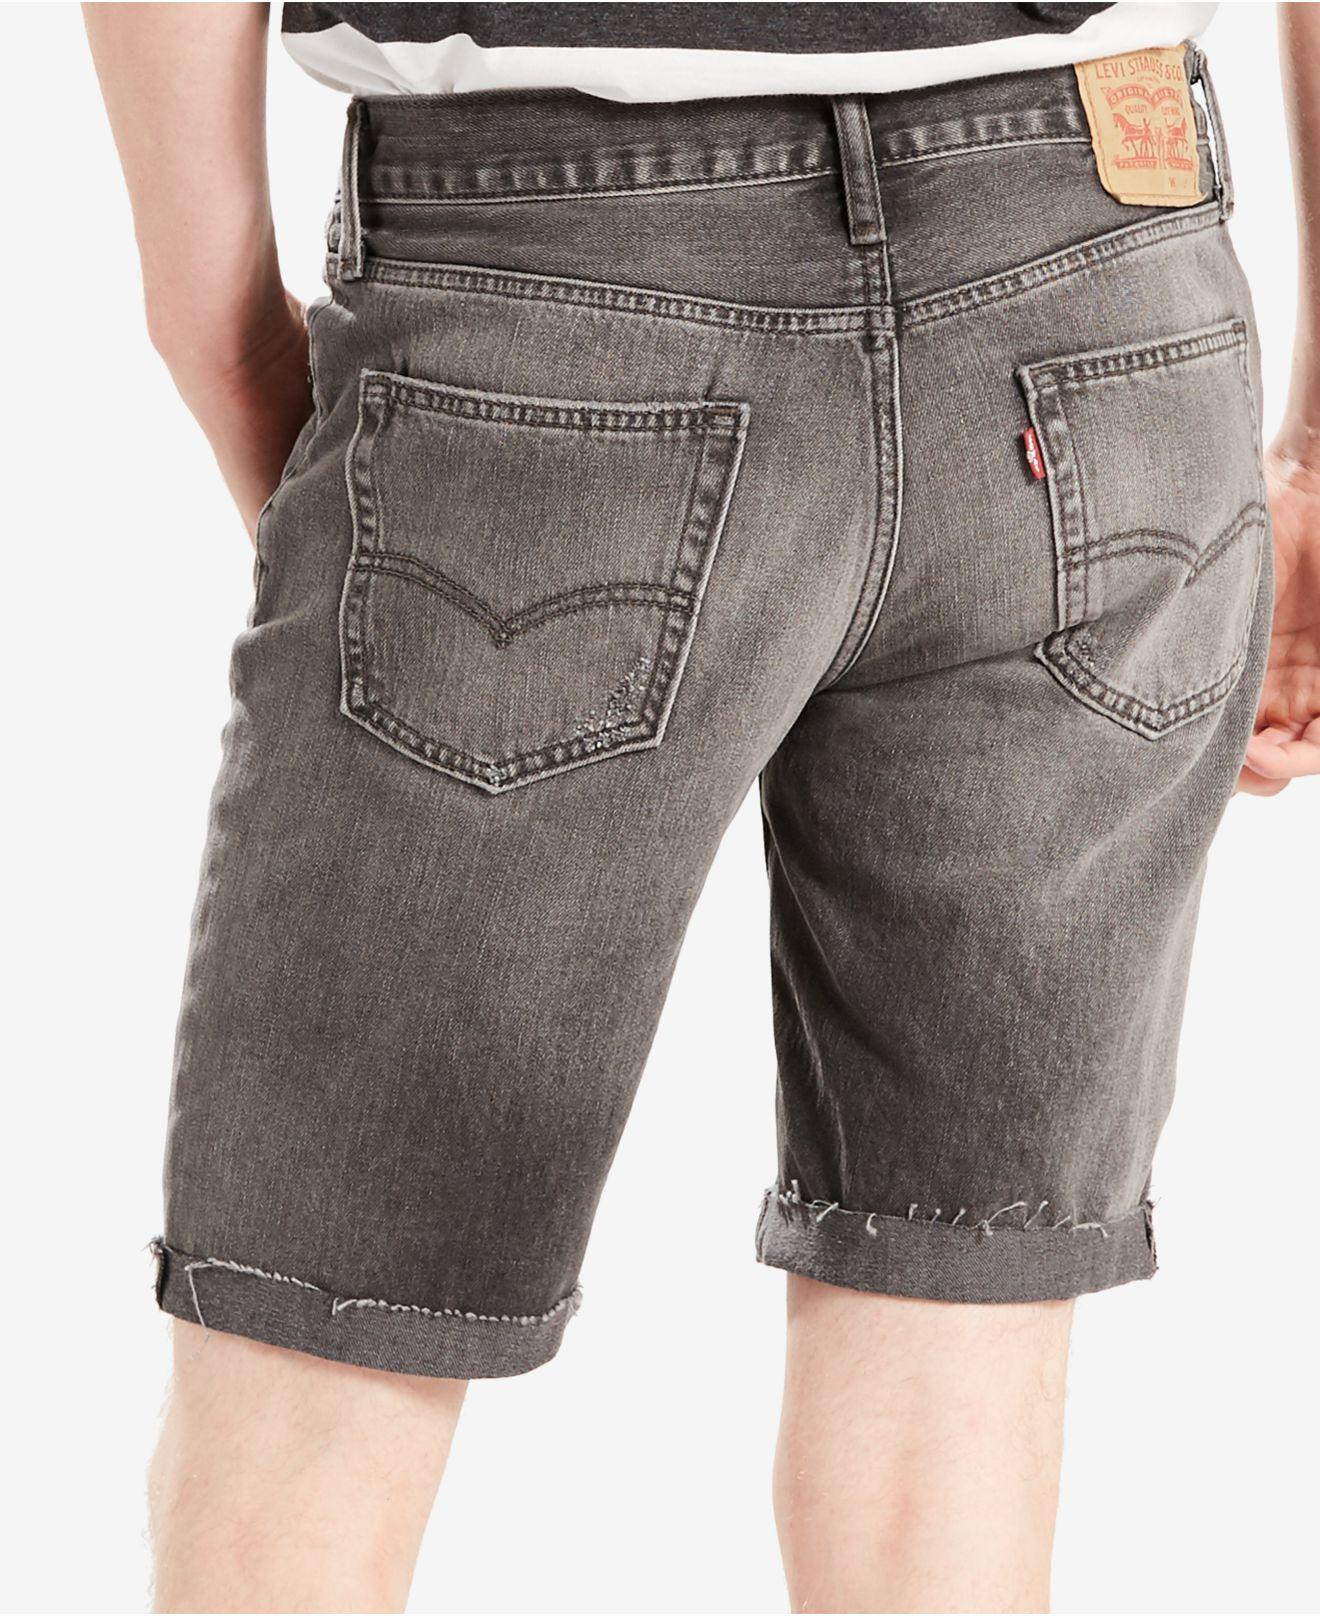 3e3551a6 Levi's Men's 511 Slim-fit Cutoff Jean Shorts in Gray for Men - Lyst